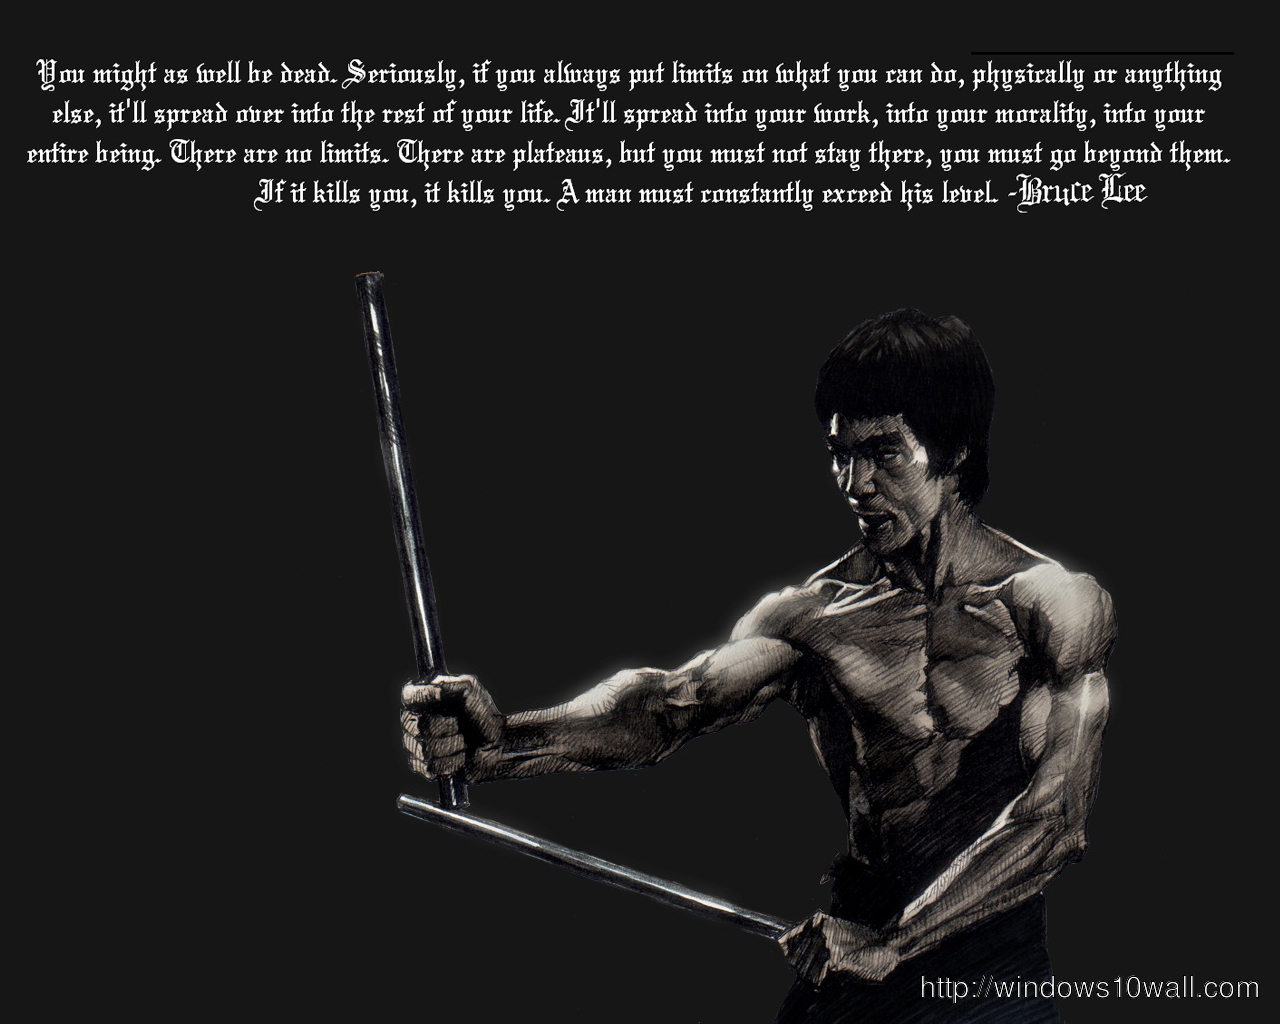 Unique Bruce Lee Quotes New Hd Wallpaper Windows 10